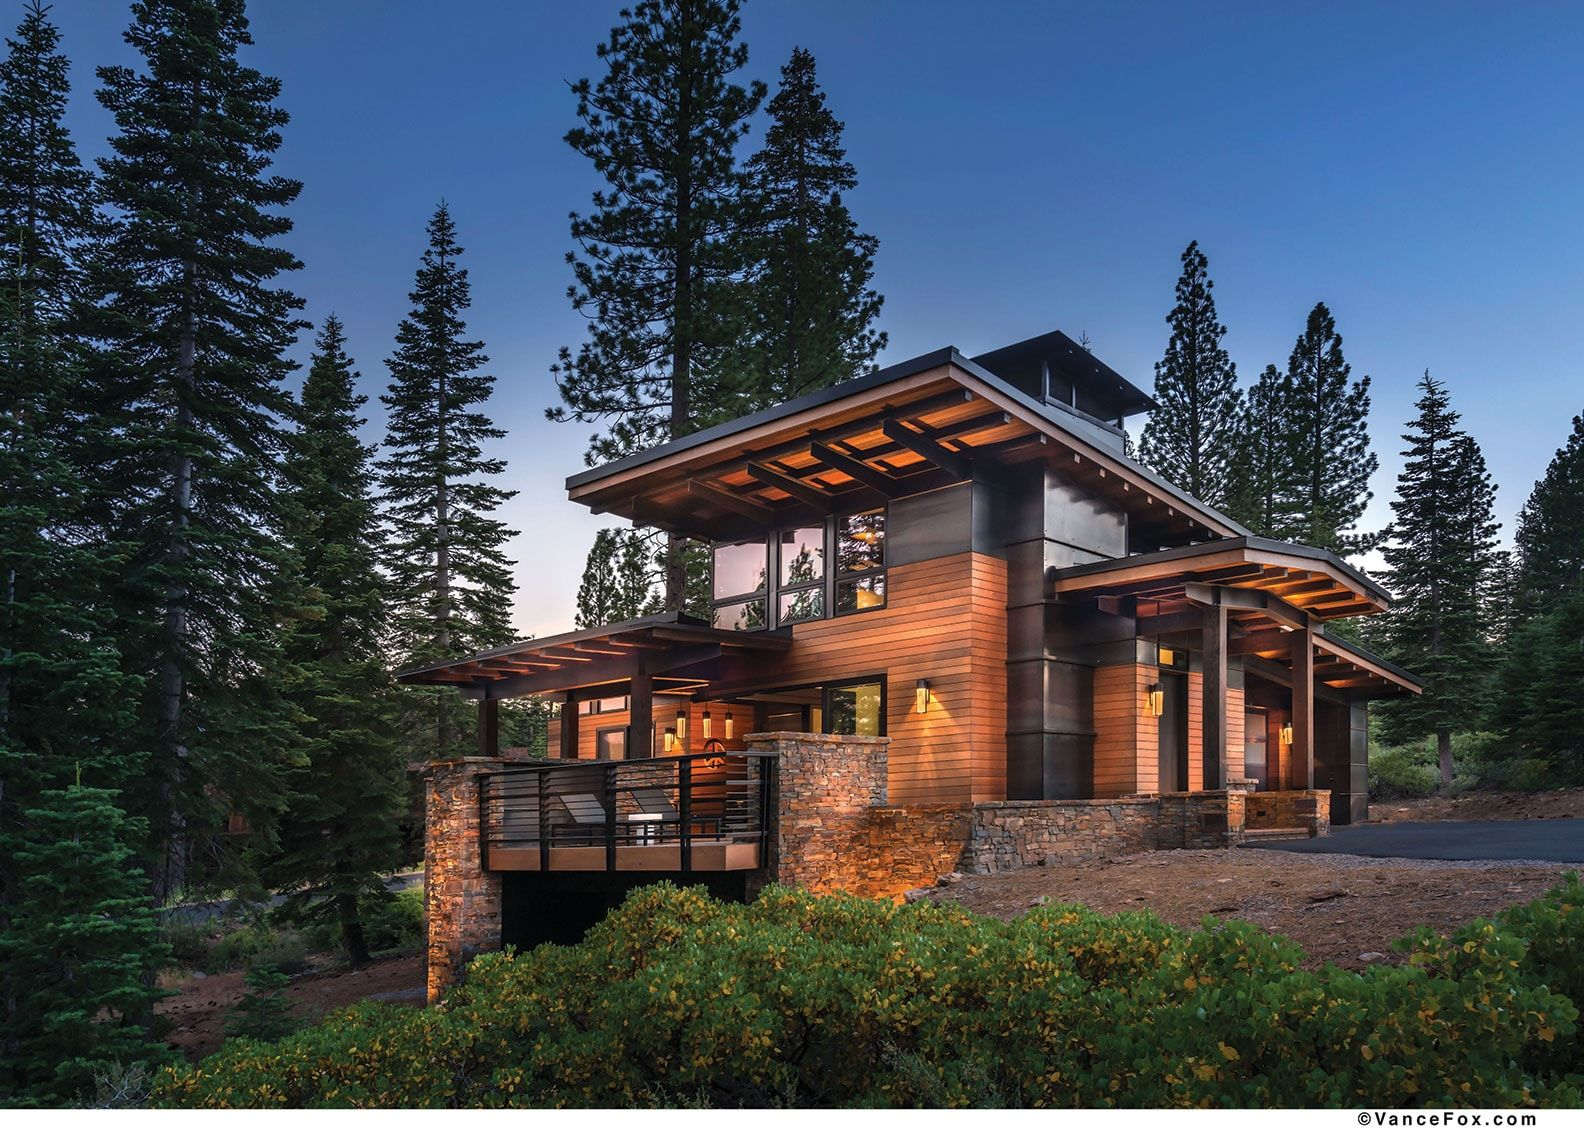 Supreme energy efficiency is not what comes to mind when laying eyes on this guesthouse, one of only two LEED Platinum–certified homes in all of Truckee. #mountainhomes